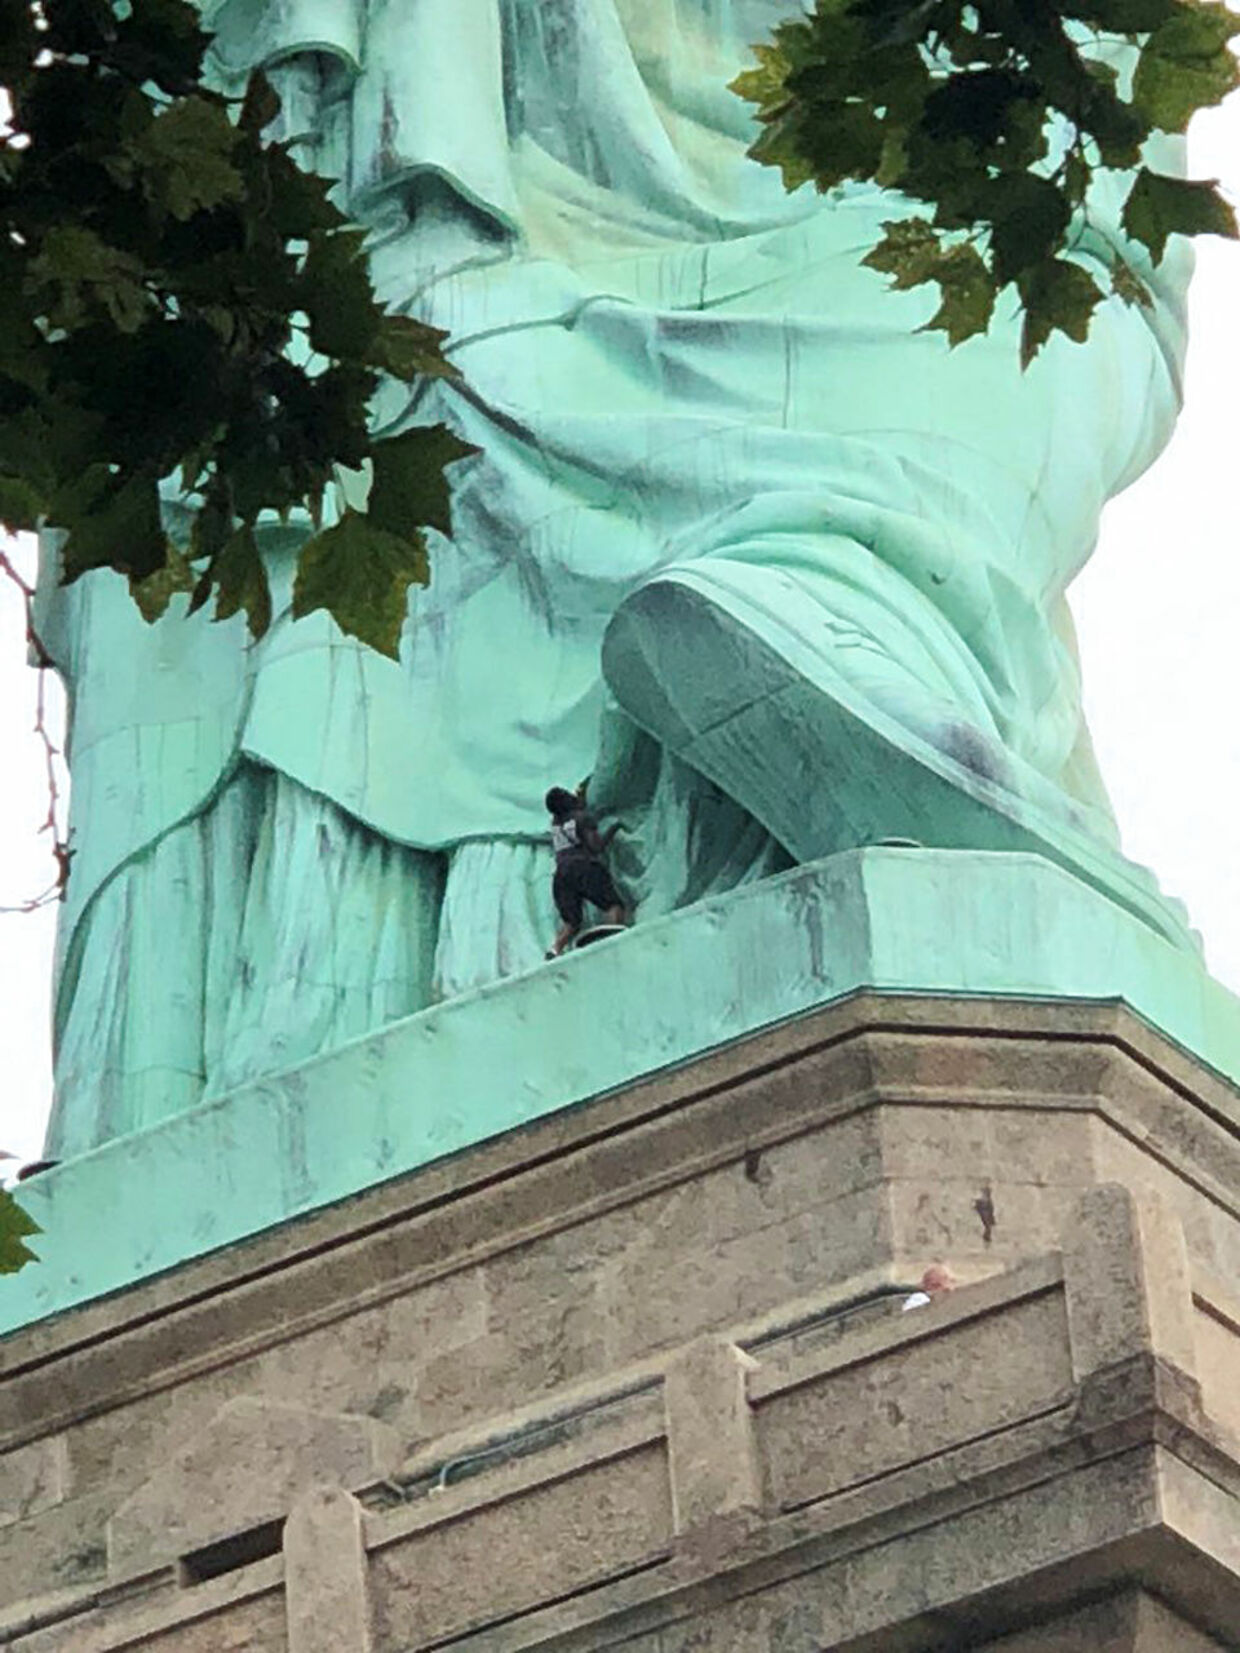 A protester is seen on the Statue of Liberty in New York, New York, U.S., July 4, 2018 in this picture obtained from social media. Danny Owens/via REUTERS THIS IMAGE HAS BEEN SUPPLIED BY A THIRD PARTY. MANDATORY CREDIT.NO RESALES.NO ARCHIVES